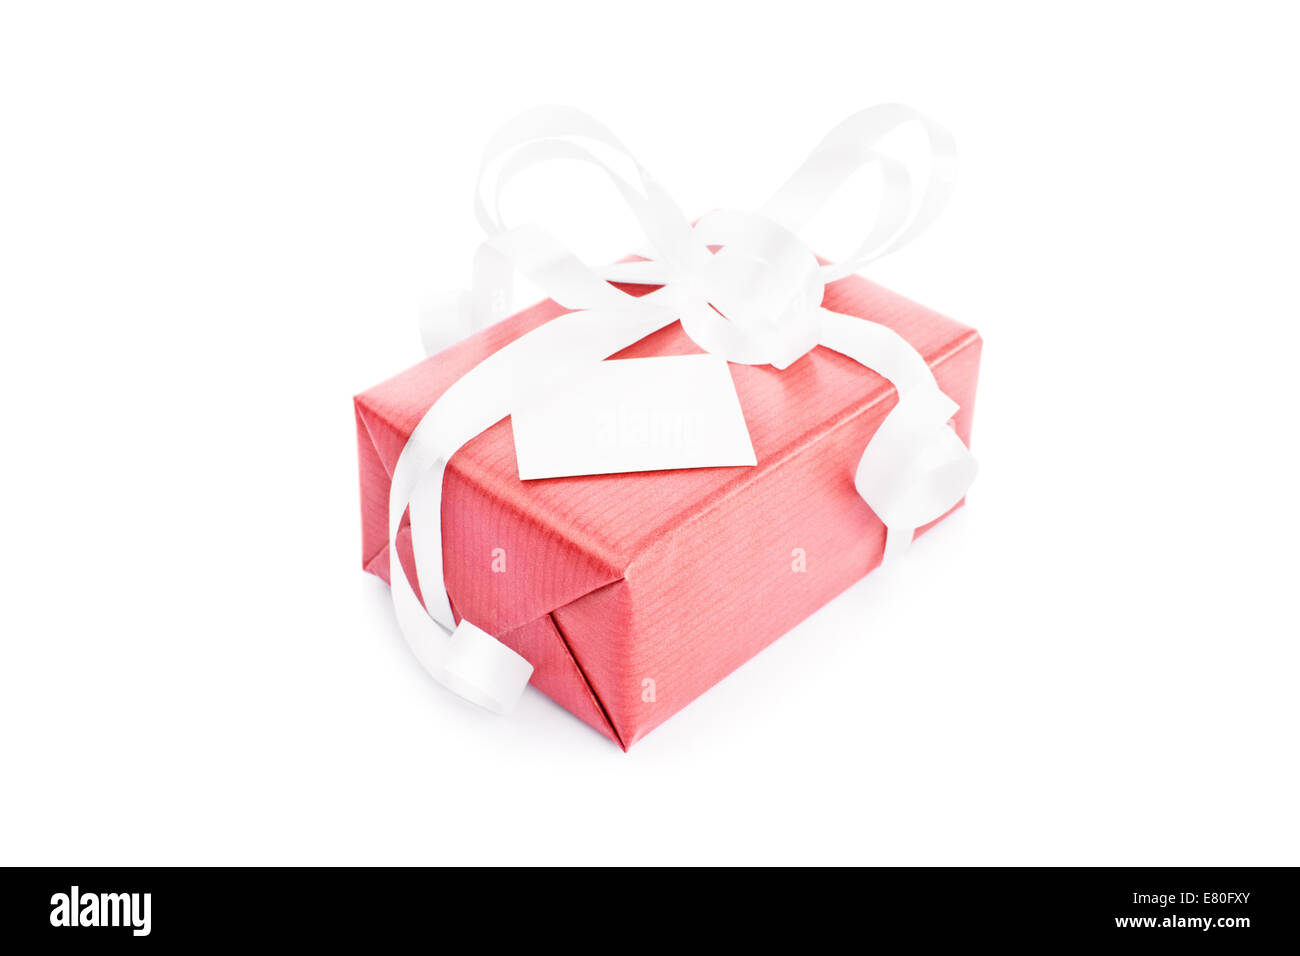 Close-up shot of a red gift box with white ribbons and a greetings card attached to it isolated on white background - Stock Image